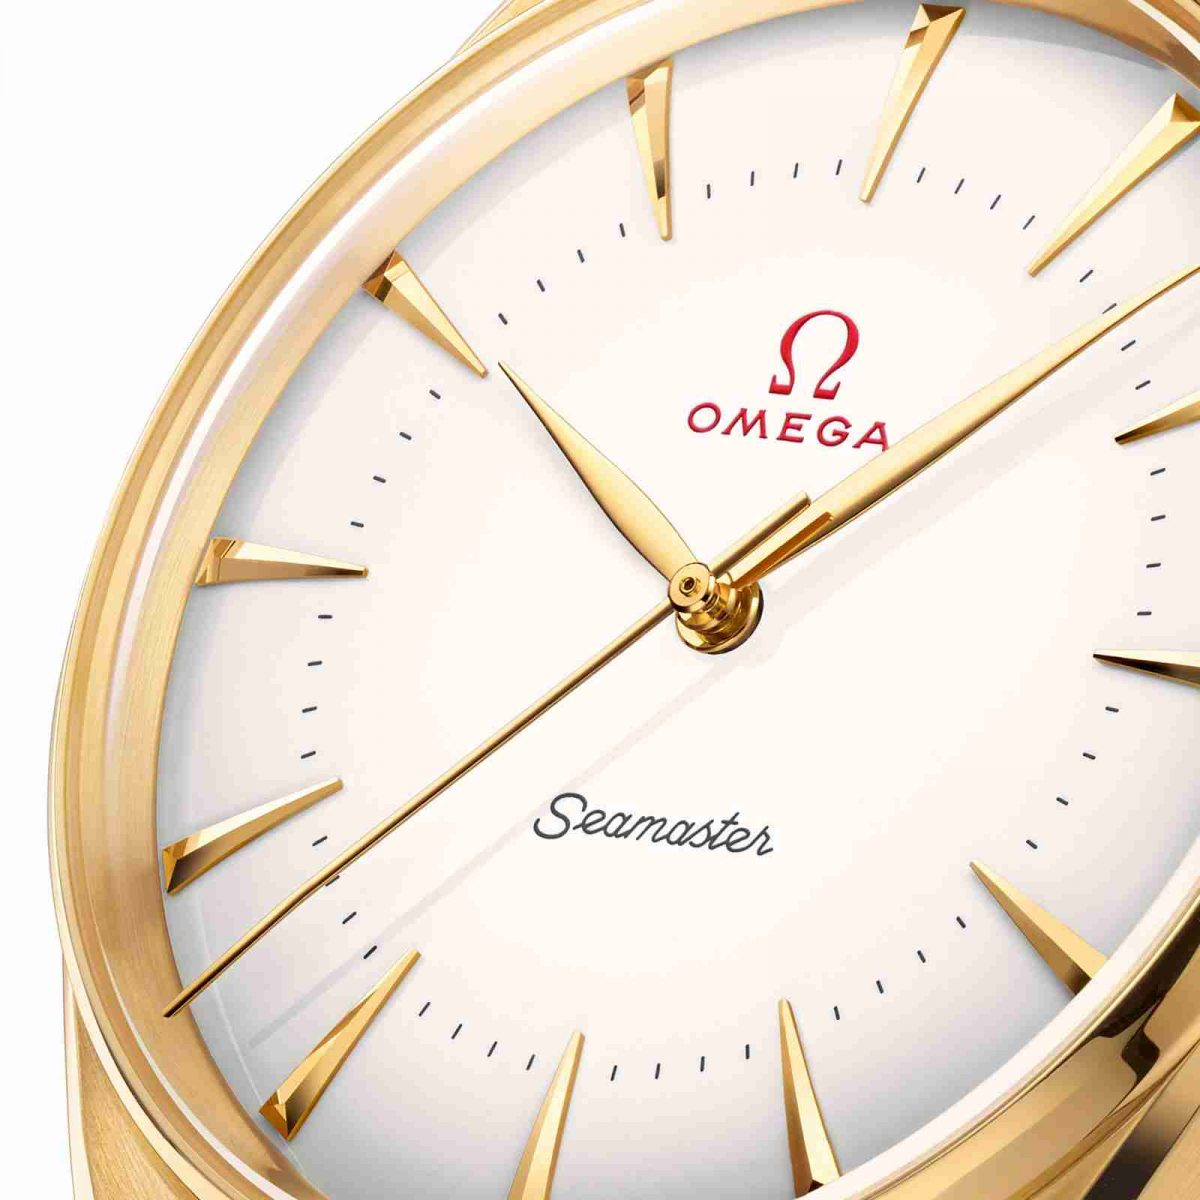 Enamel Dials Replica Omega Seamaster Olympics 1950s 18k Gold 39.5mm Watch Review